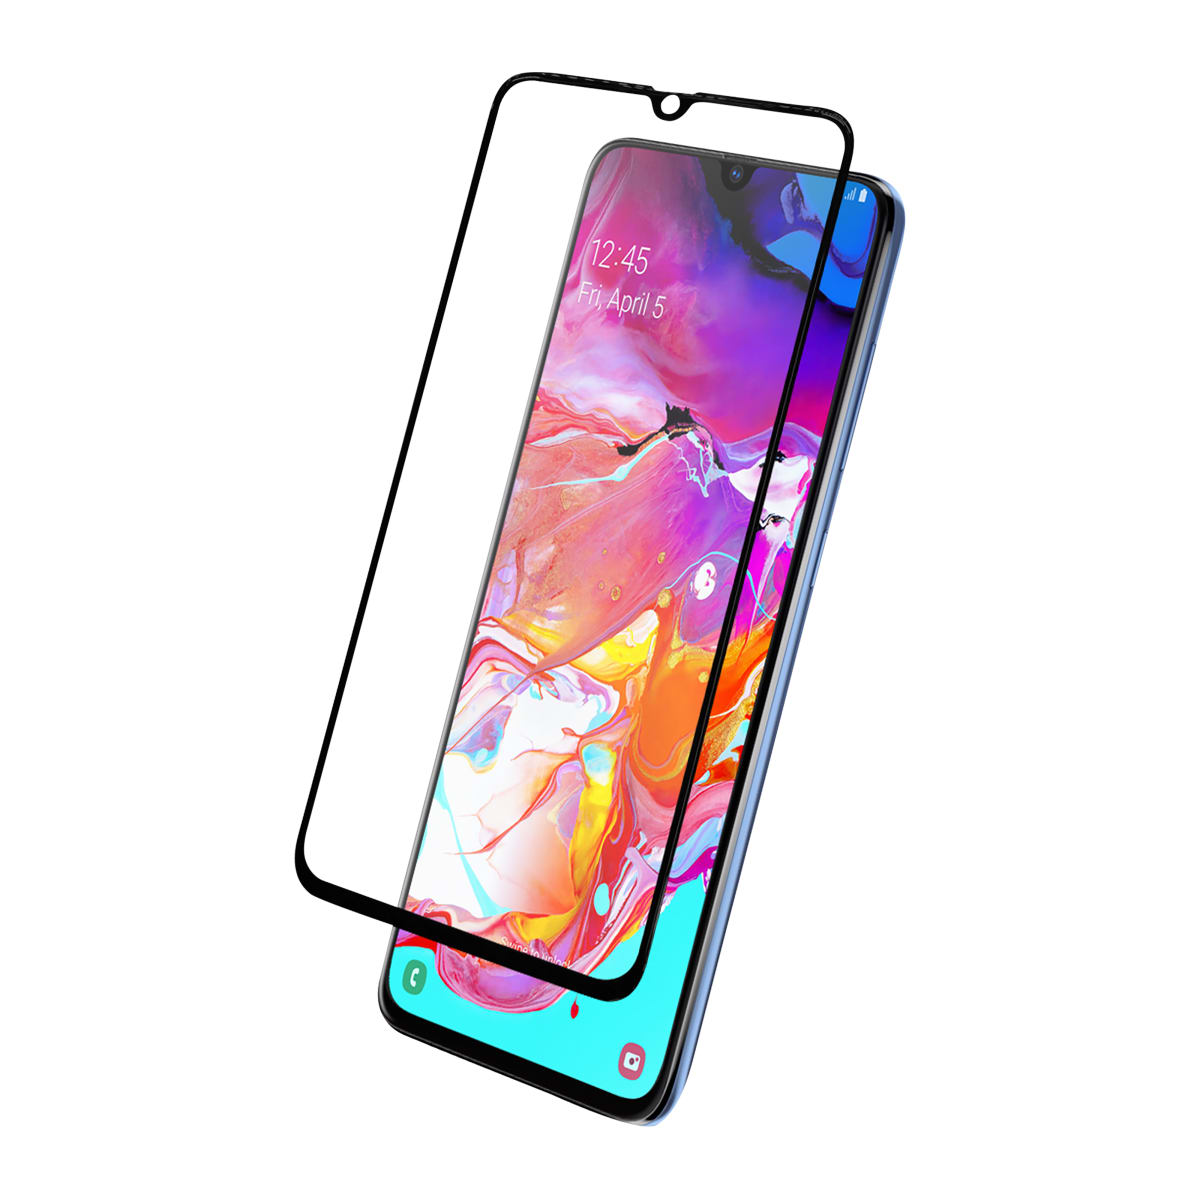 Tempered glass protection for Samsung Galaxy A70